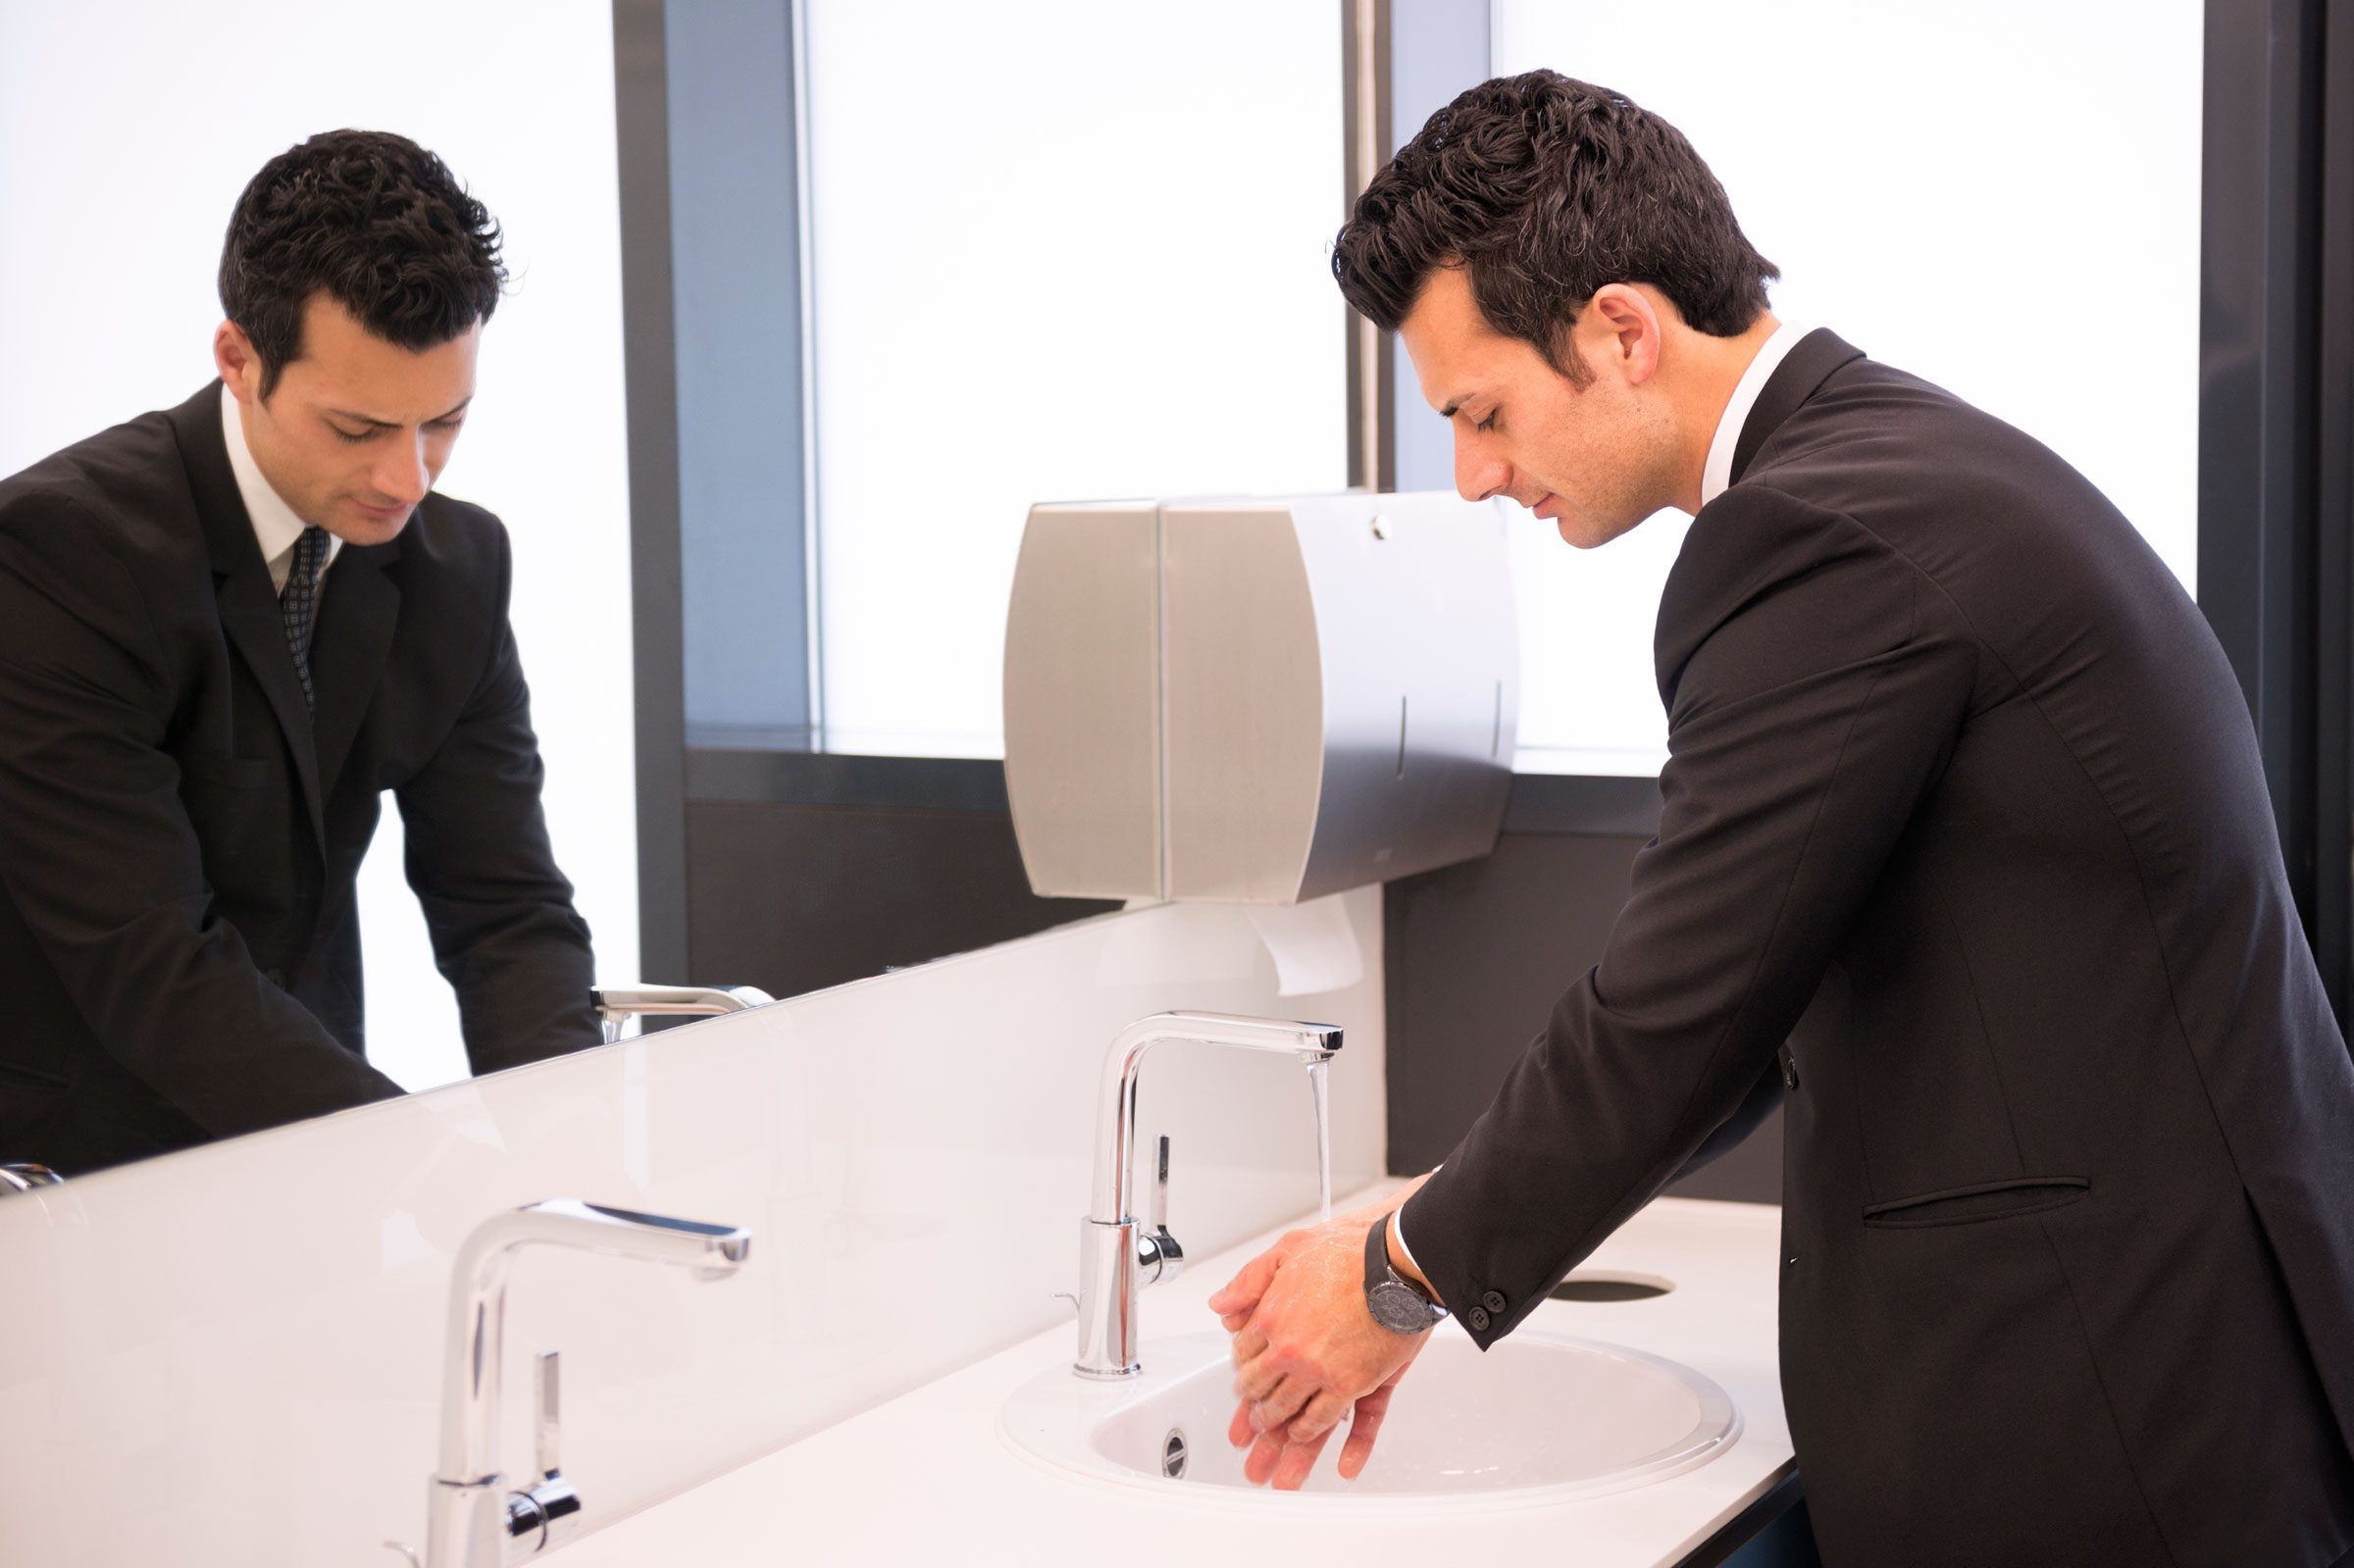 Bathroom Etiquette all your bathroom etiquette questions—answered! | reader's digest